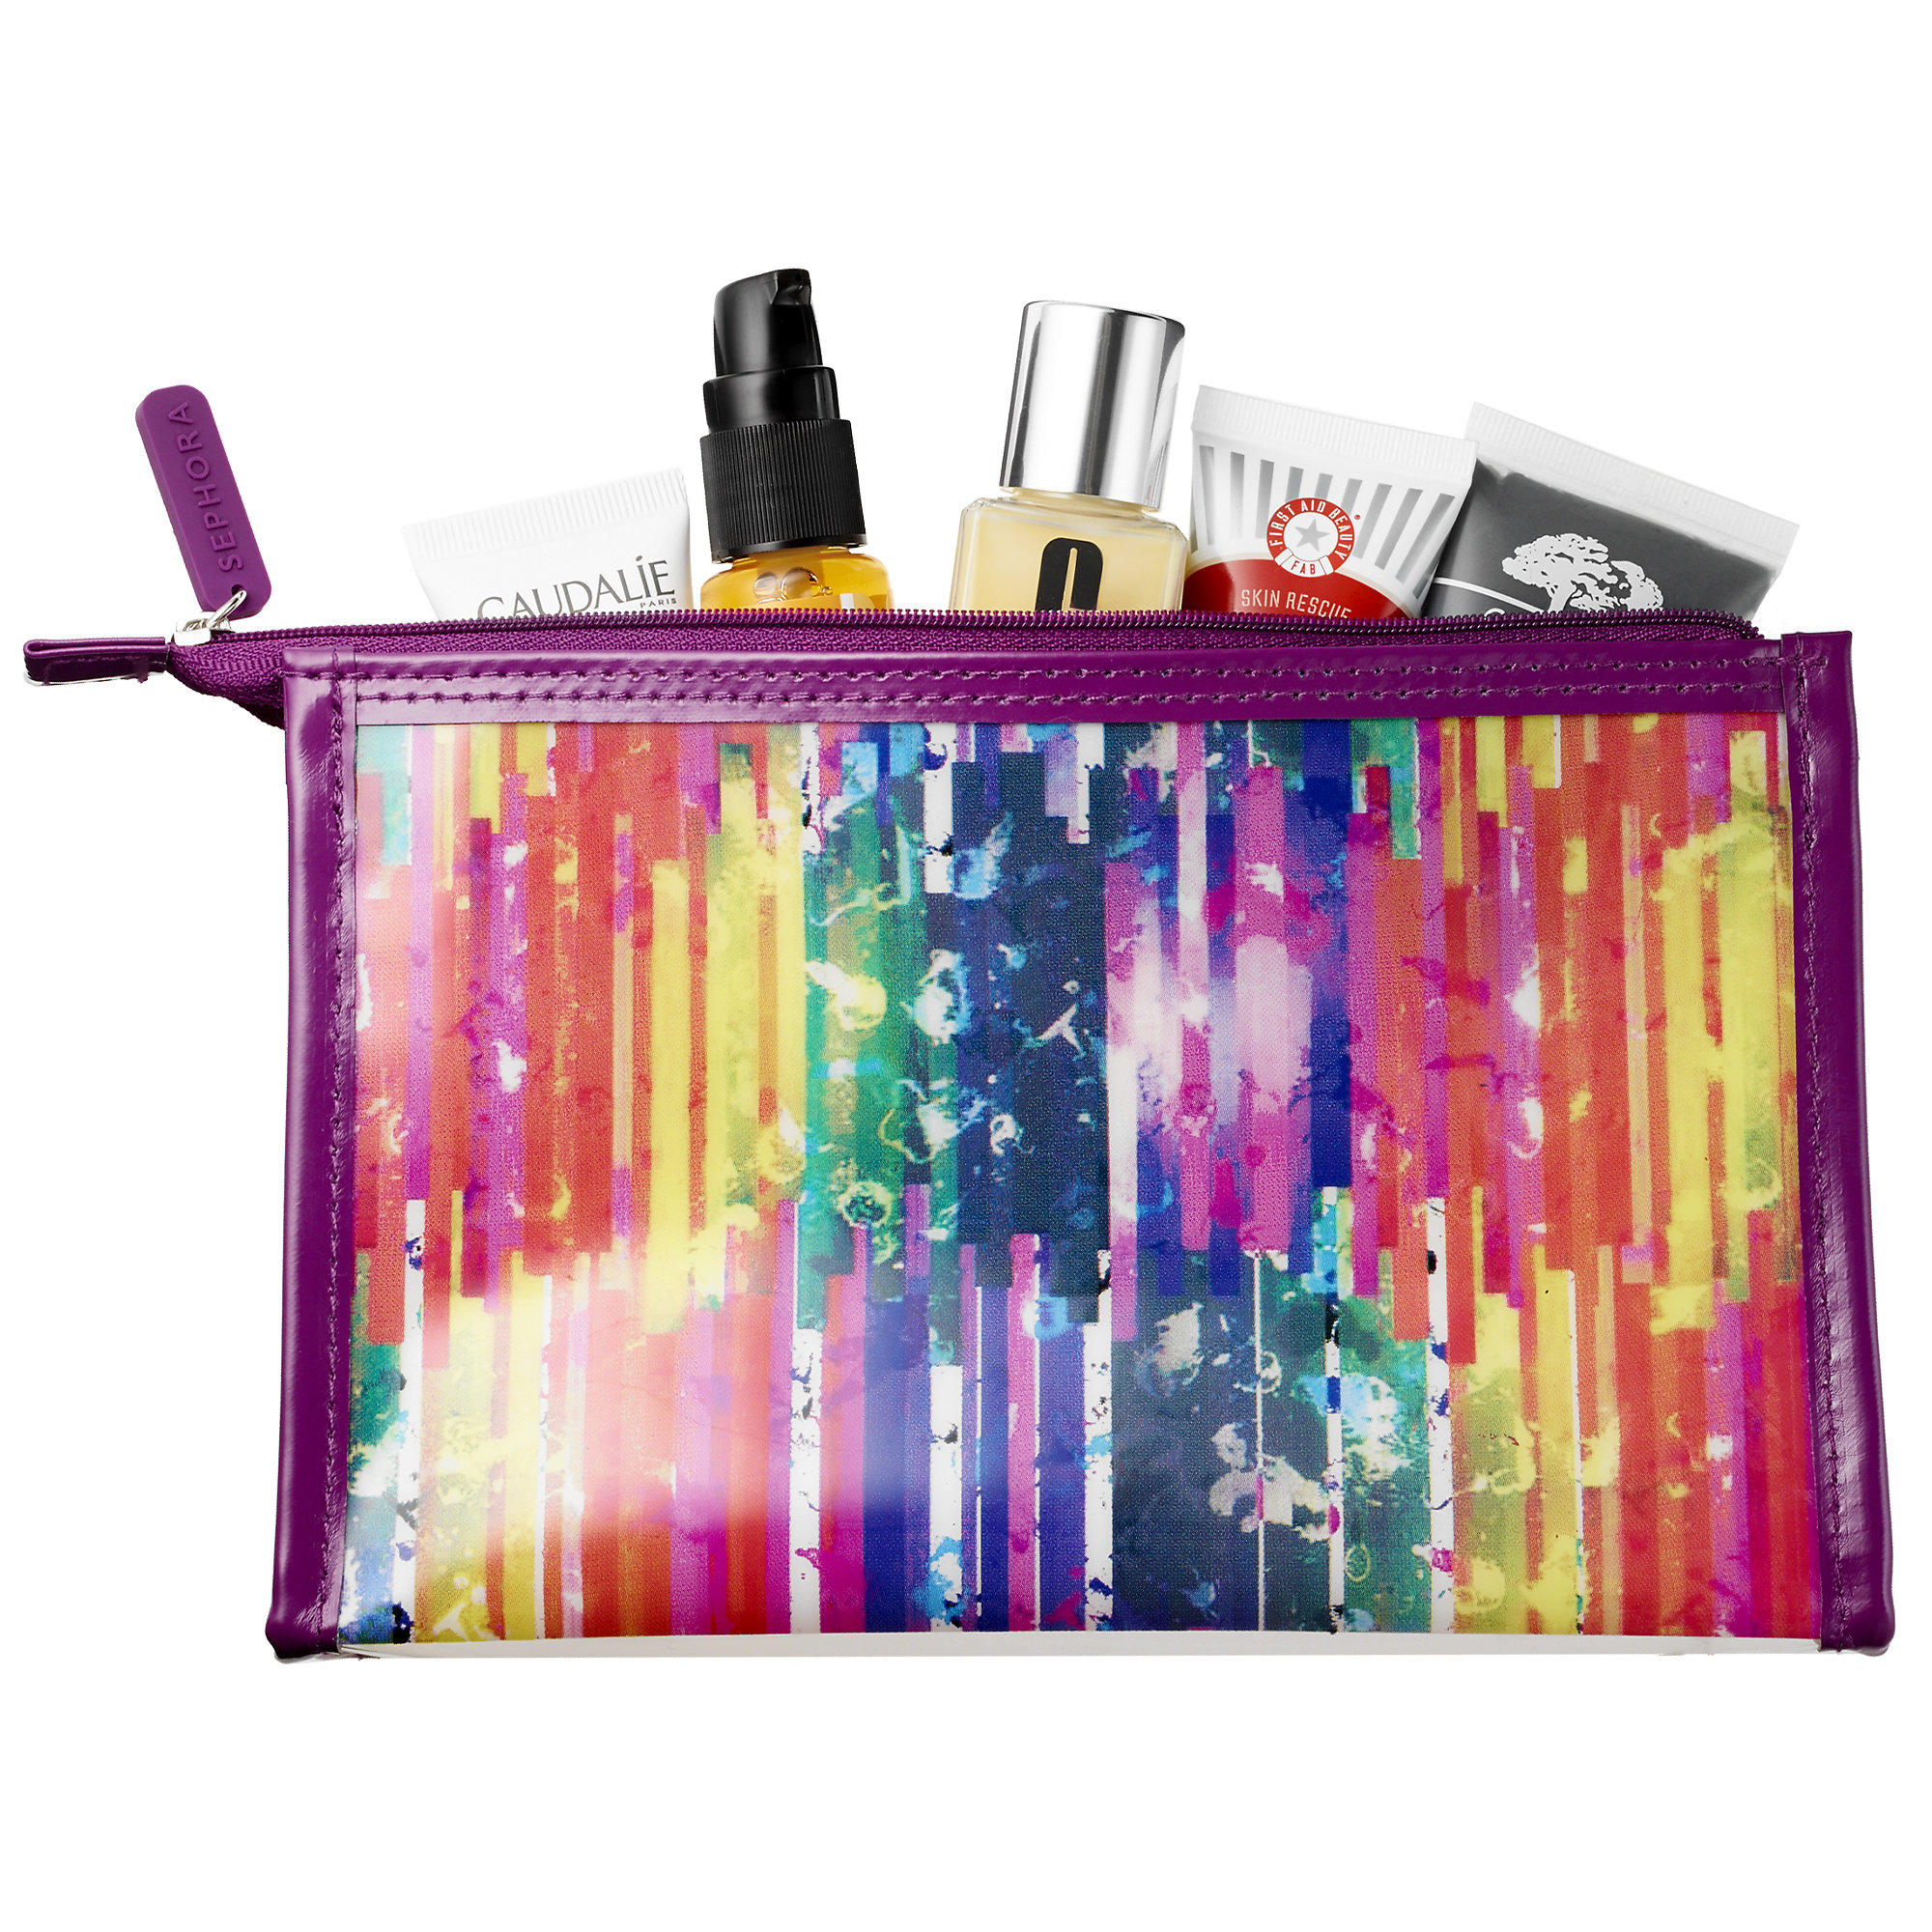 Sephora launched New Customized Skincare Favorites Bag